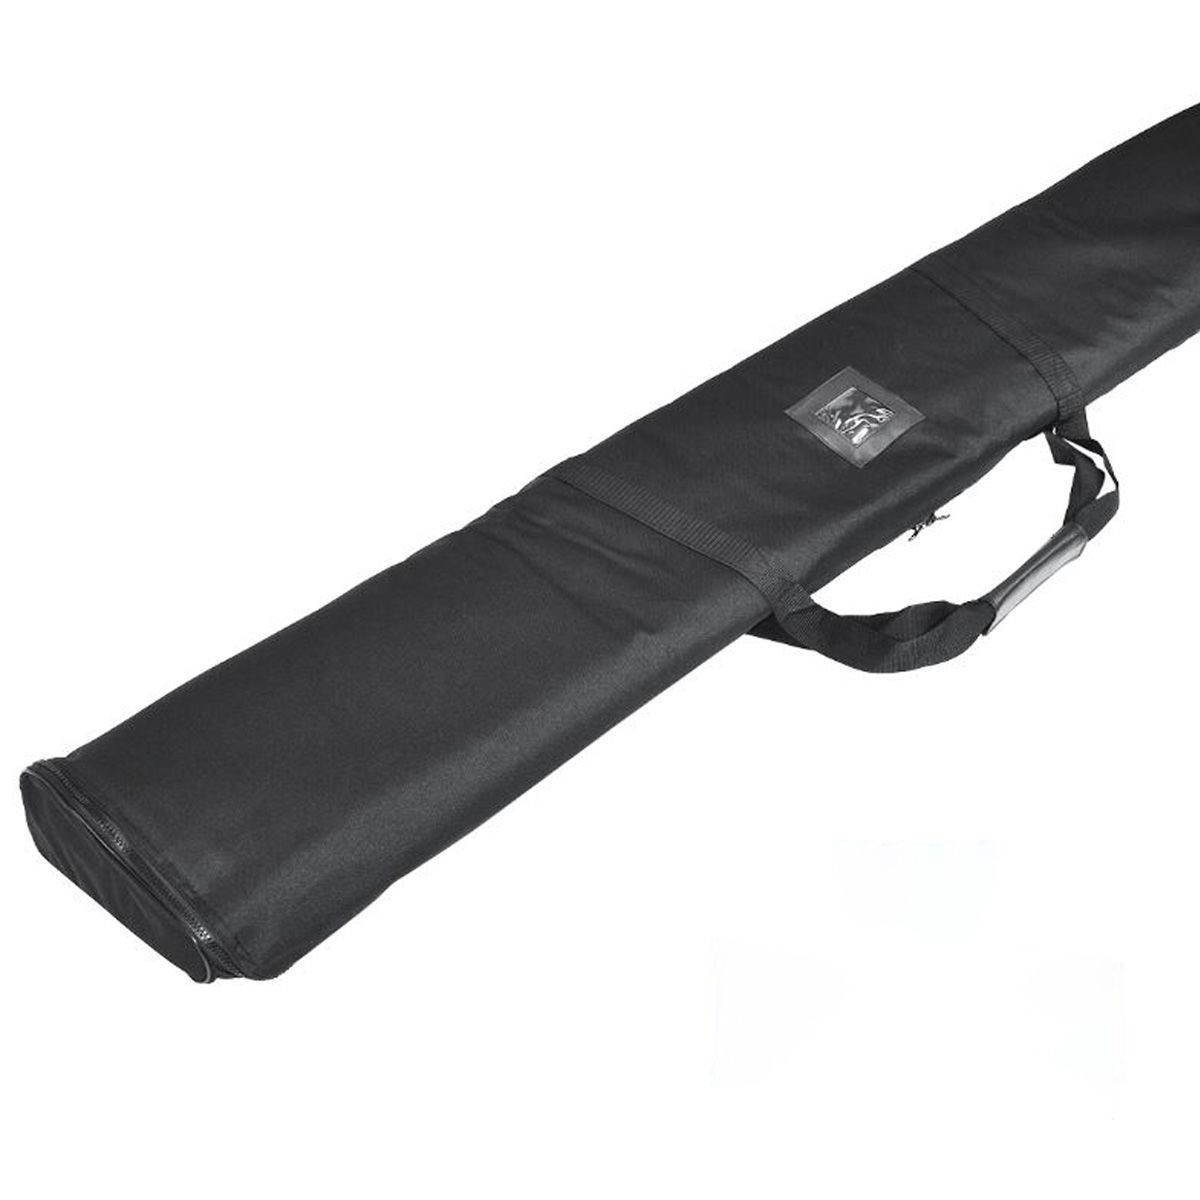 Carrying Bag for Retractable Backdrop Stand